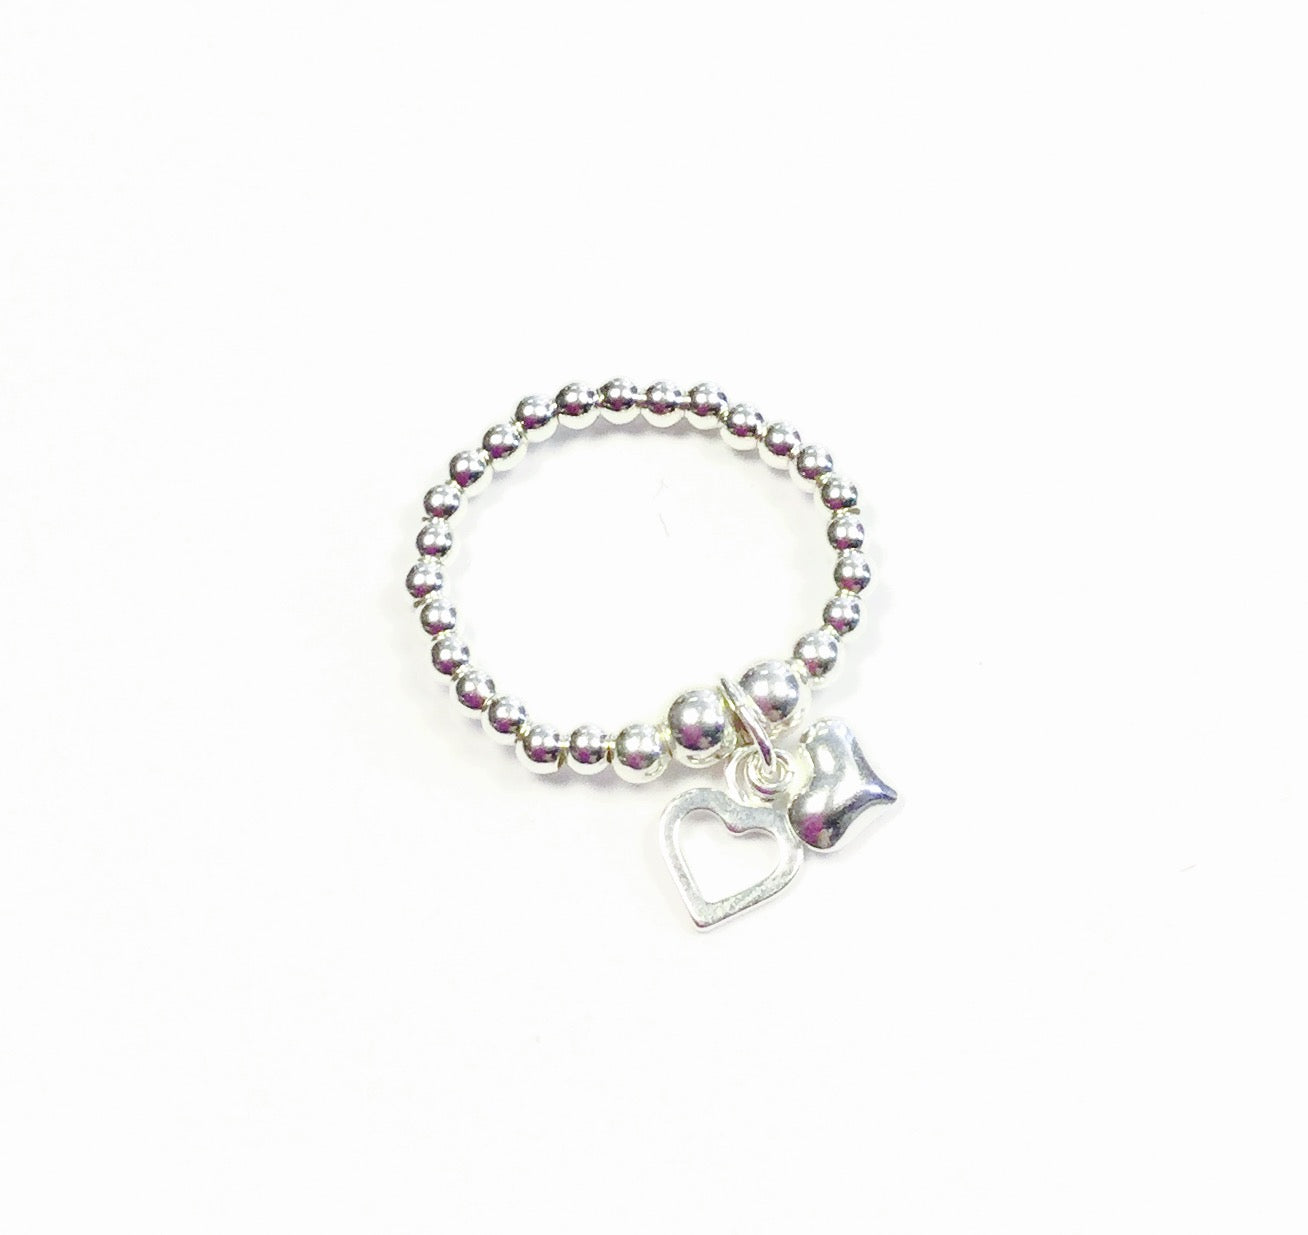 Jolu Jewellery Bella 2 Hearts Charm Sterling Silver Stretch Ring